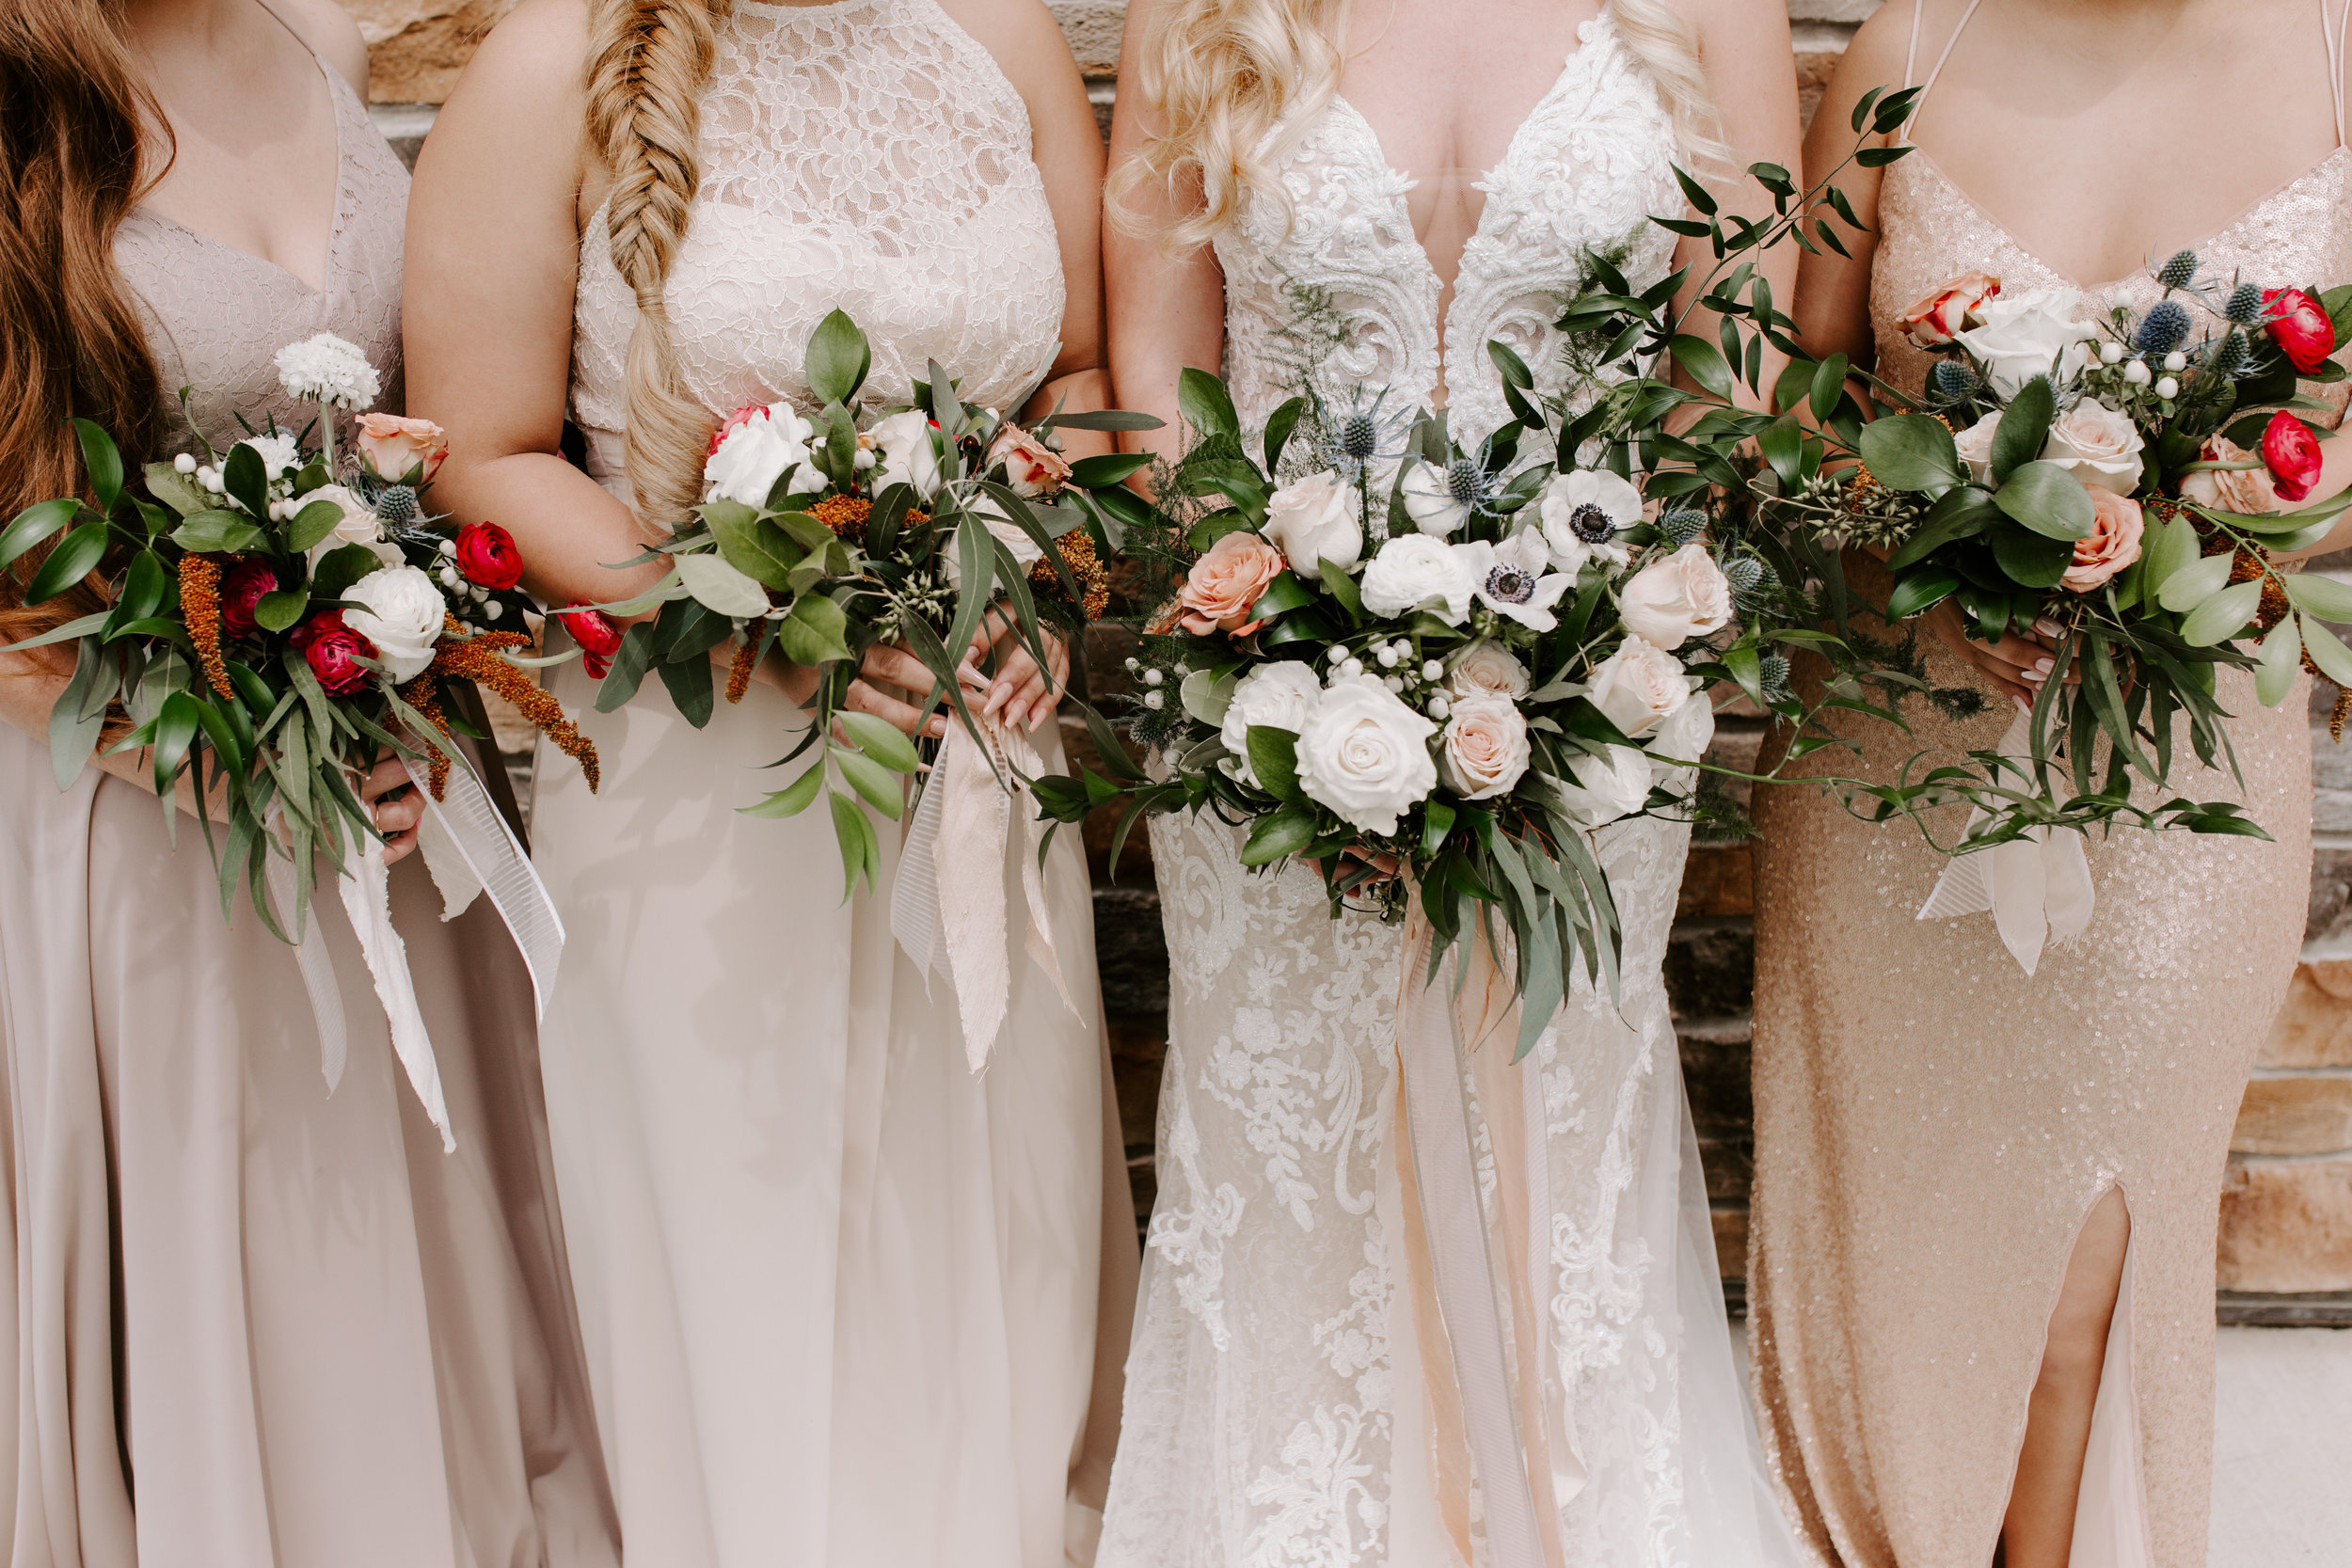 Bridesmaids and bride posing for wedding photo with bridal party, holding bouquets with cream and blush roses and eucalyptus at Country Lane Lodge in Des Moines Iowa